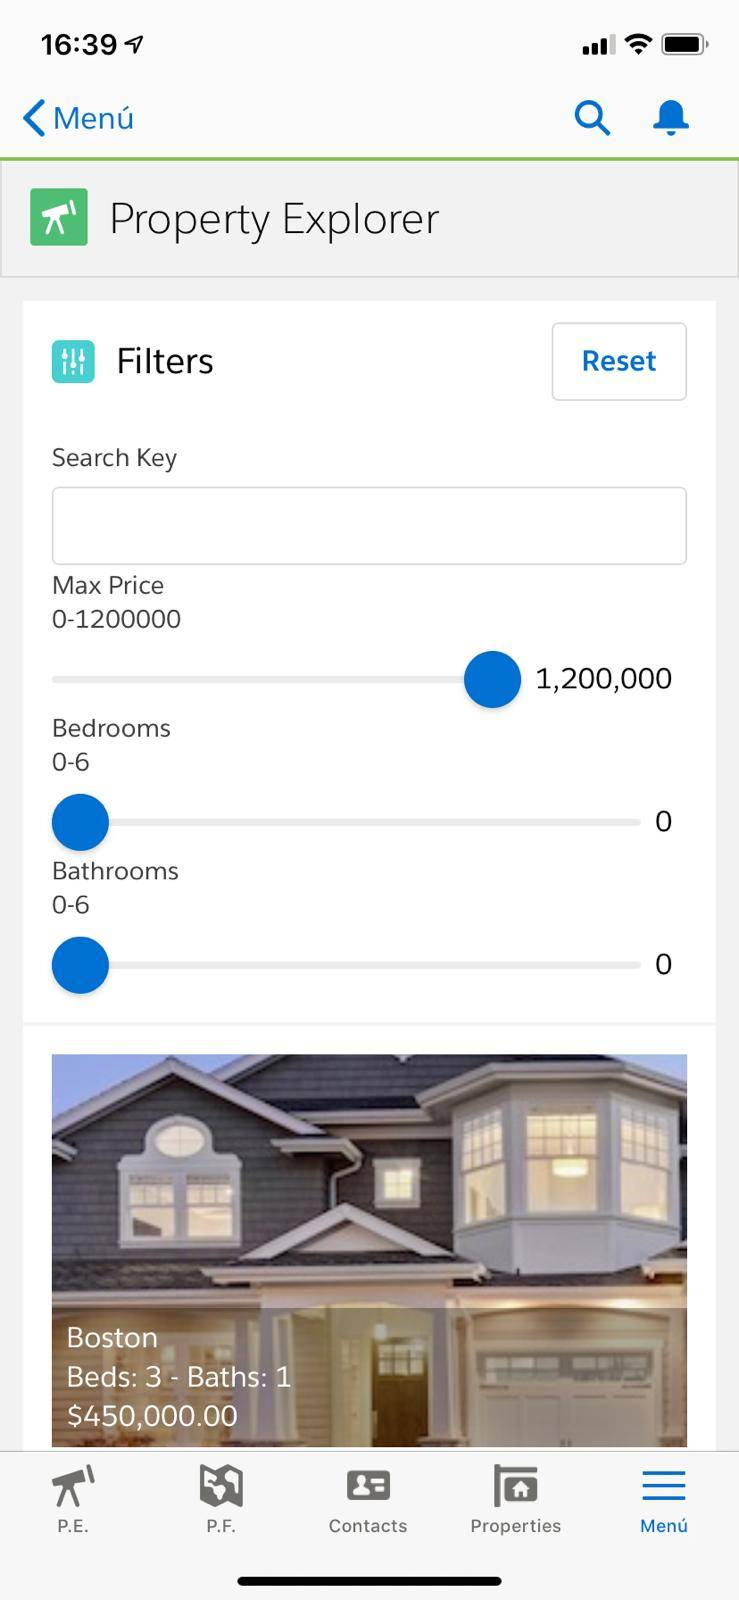 Property Explorer on mobile